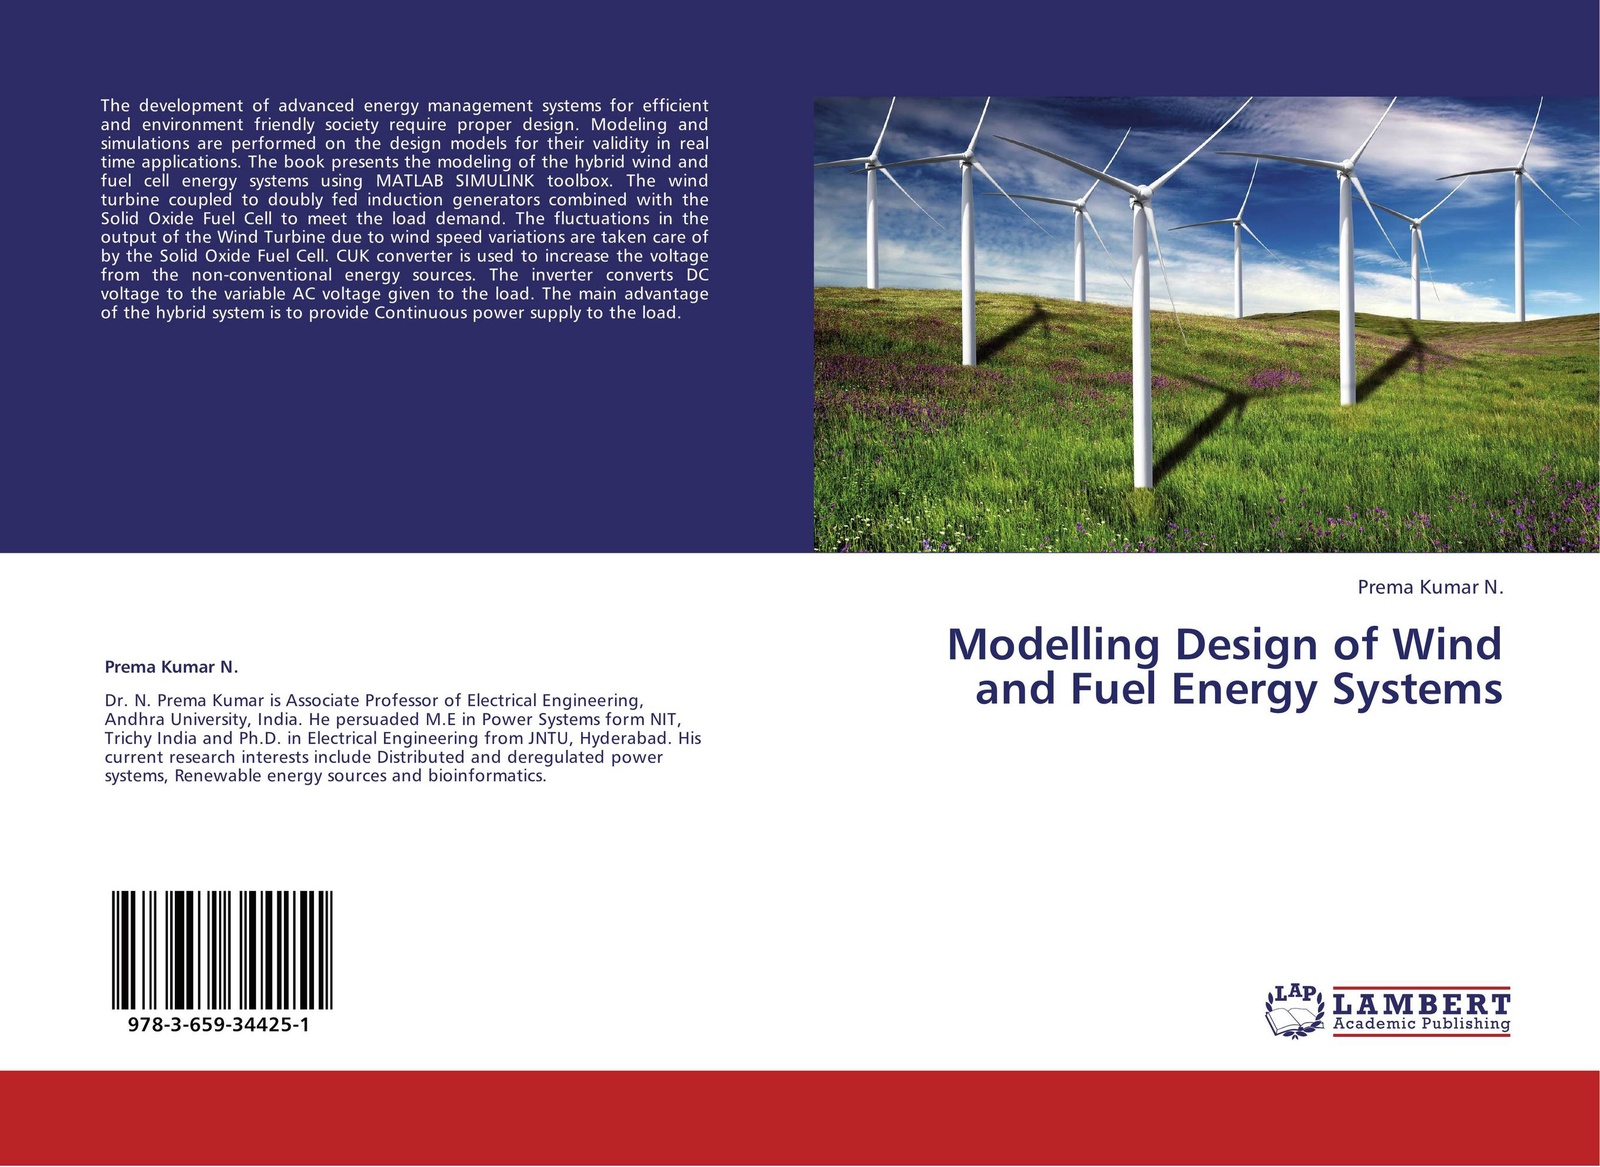 Prema Kumar N. Modelling Design of Wind and Fuel Energy Systems modeling energy–economy interactions